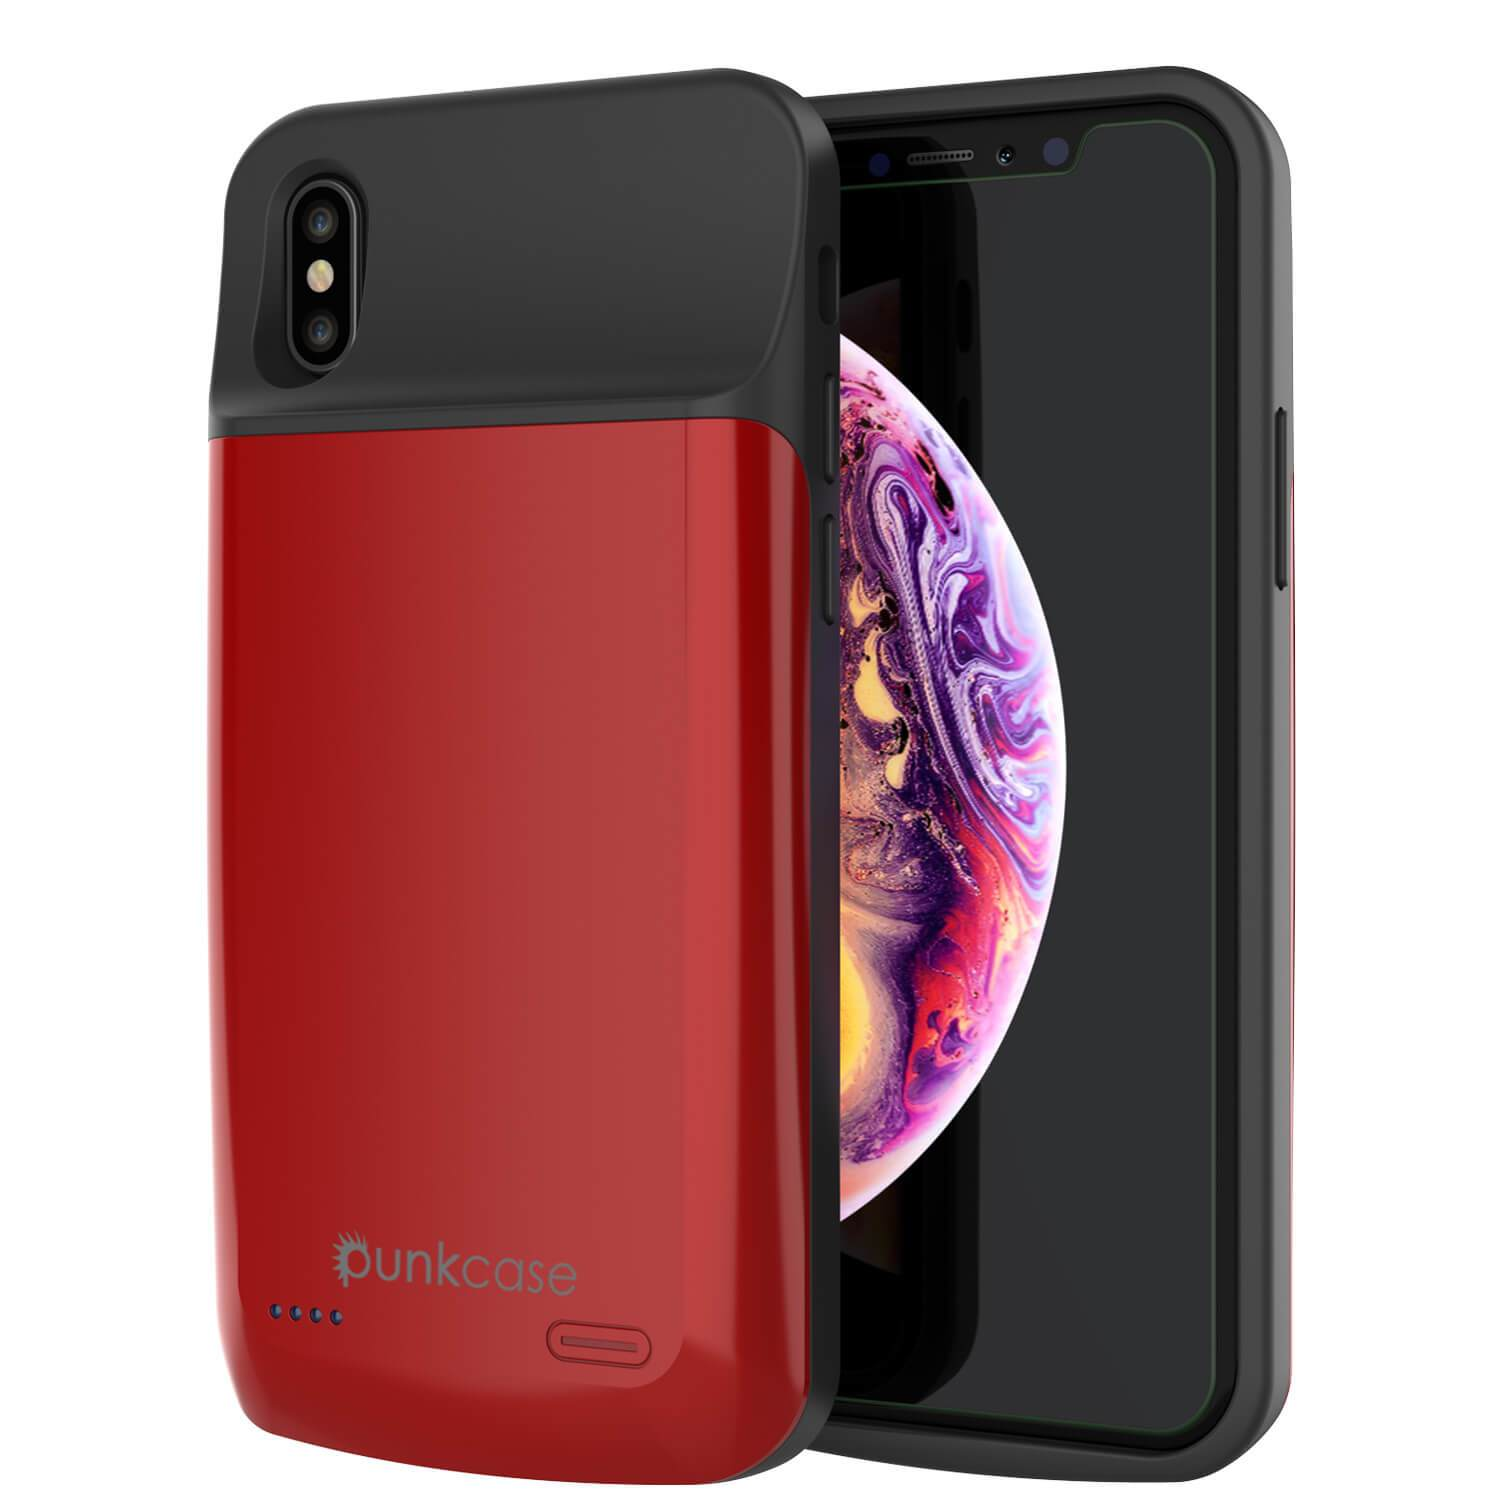 iphone XS Battery Case, PunkJuice 5000mAH Fast Charging Power Bank W/ Screen Protector | [Red]